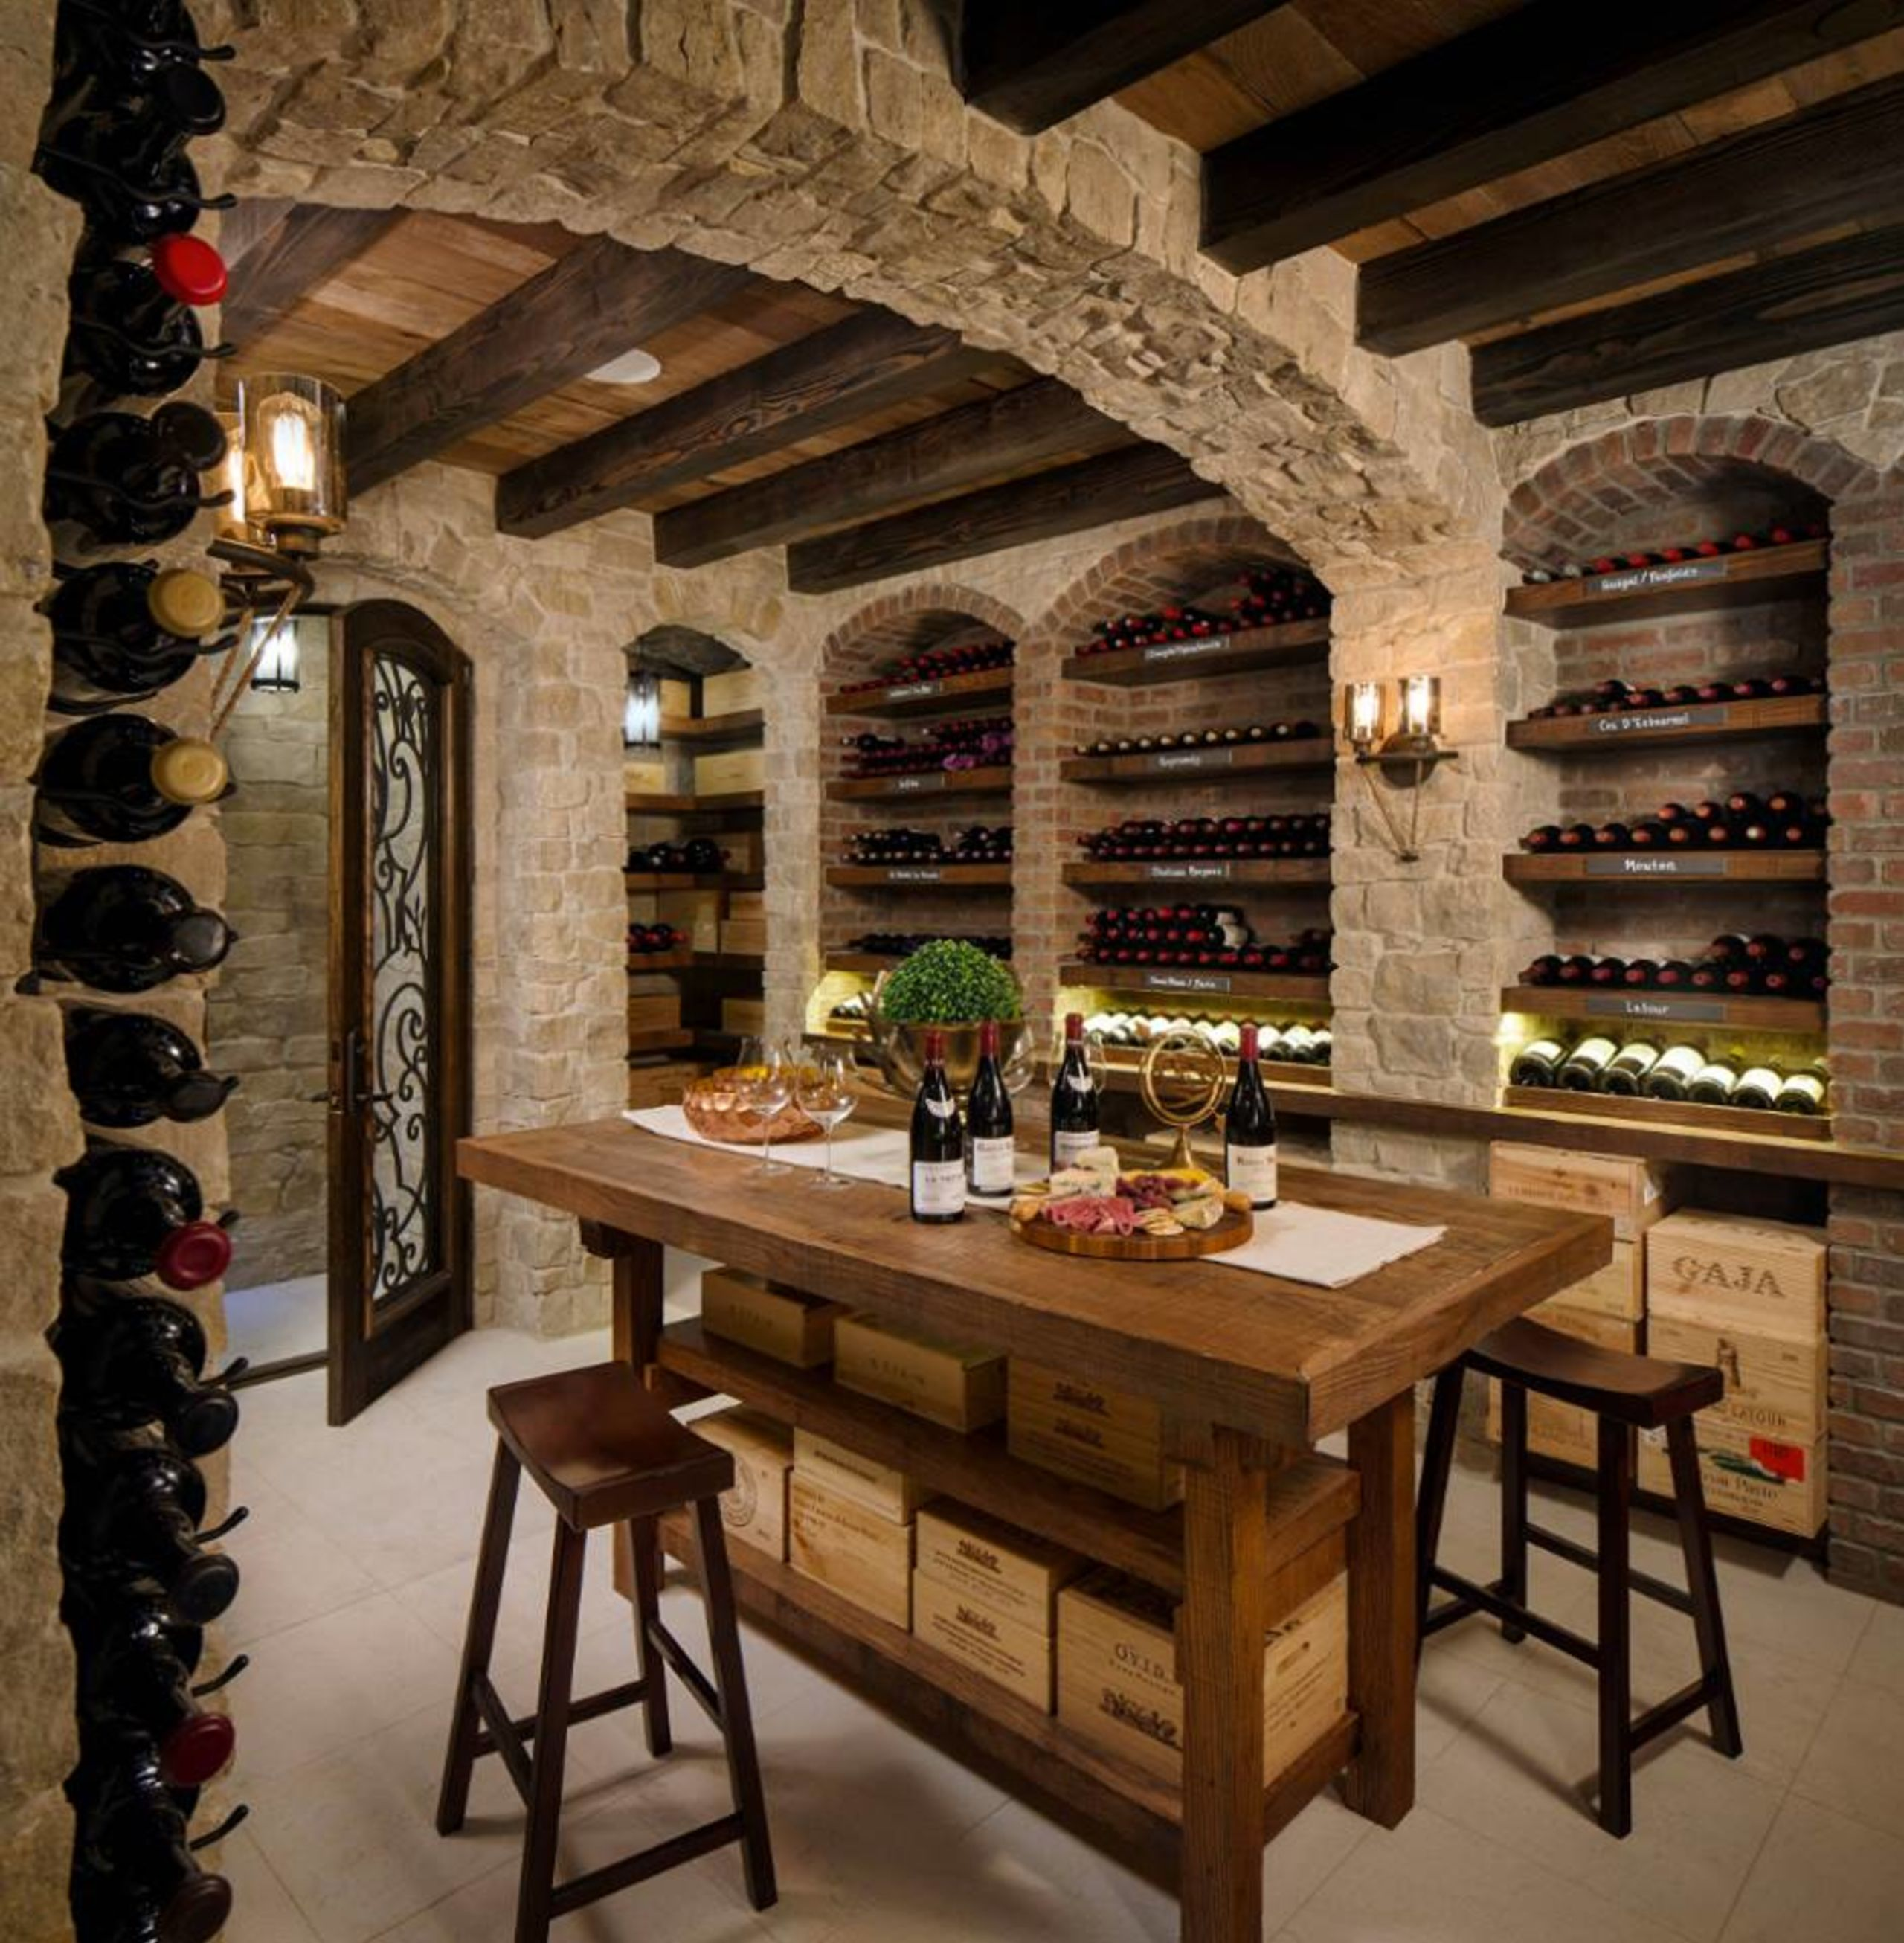 Do you need a wine cellar?